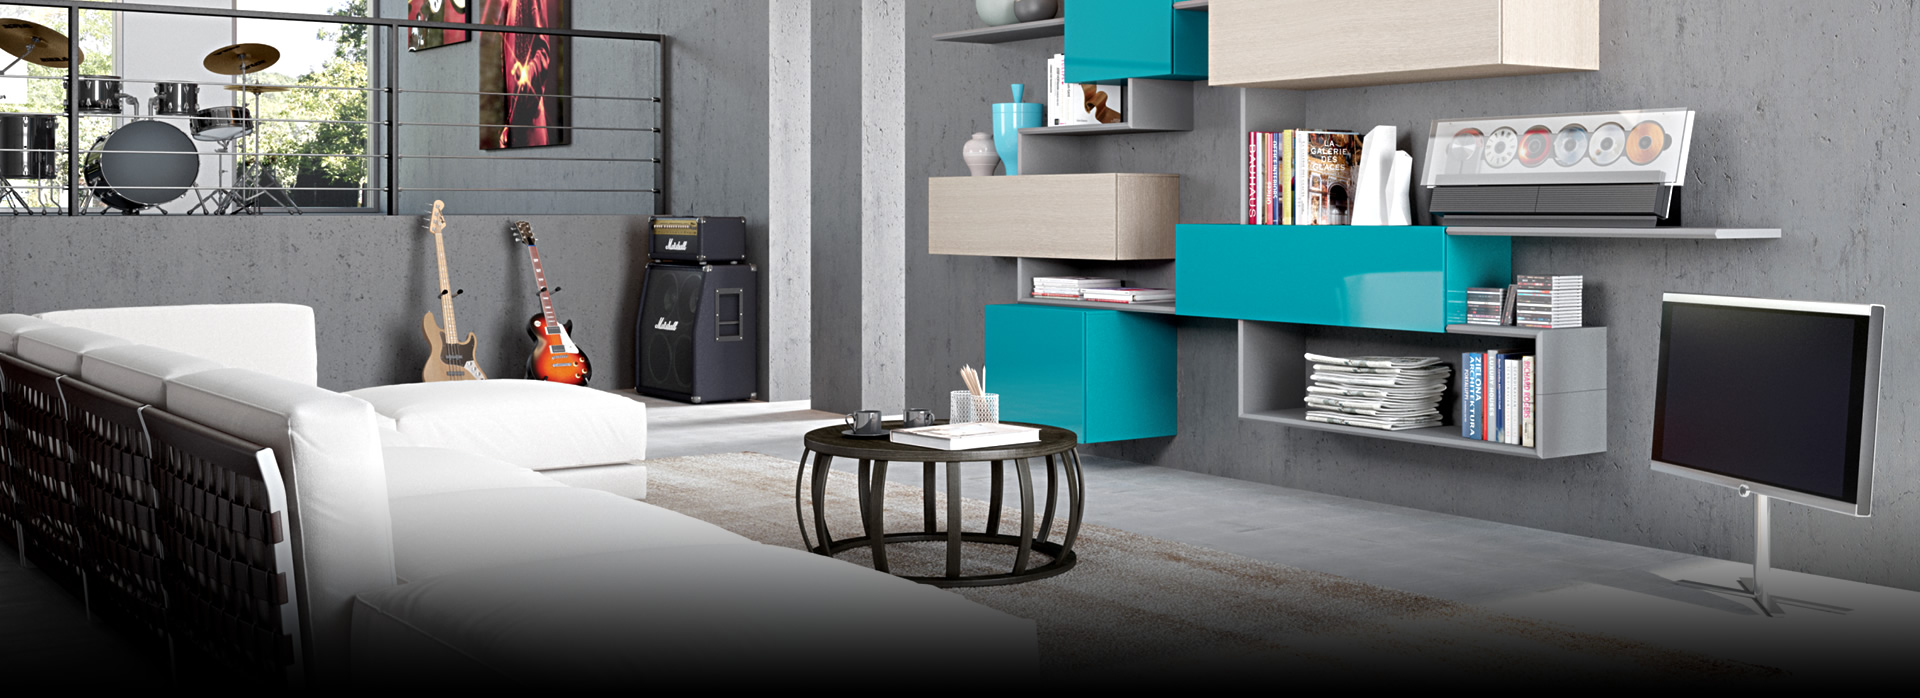 le papillon m bel ital design. Black Bedroom Furniture Sets. Home Design Ideas